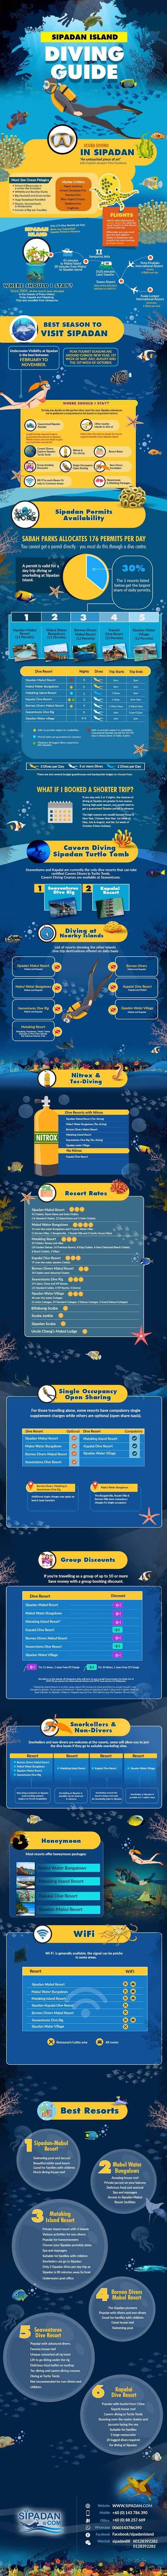 Sipadan Island Diving Guide #infographic